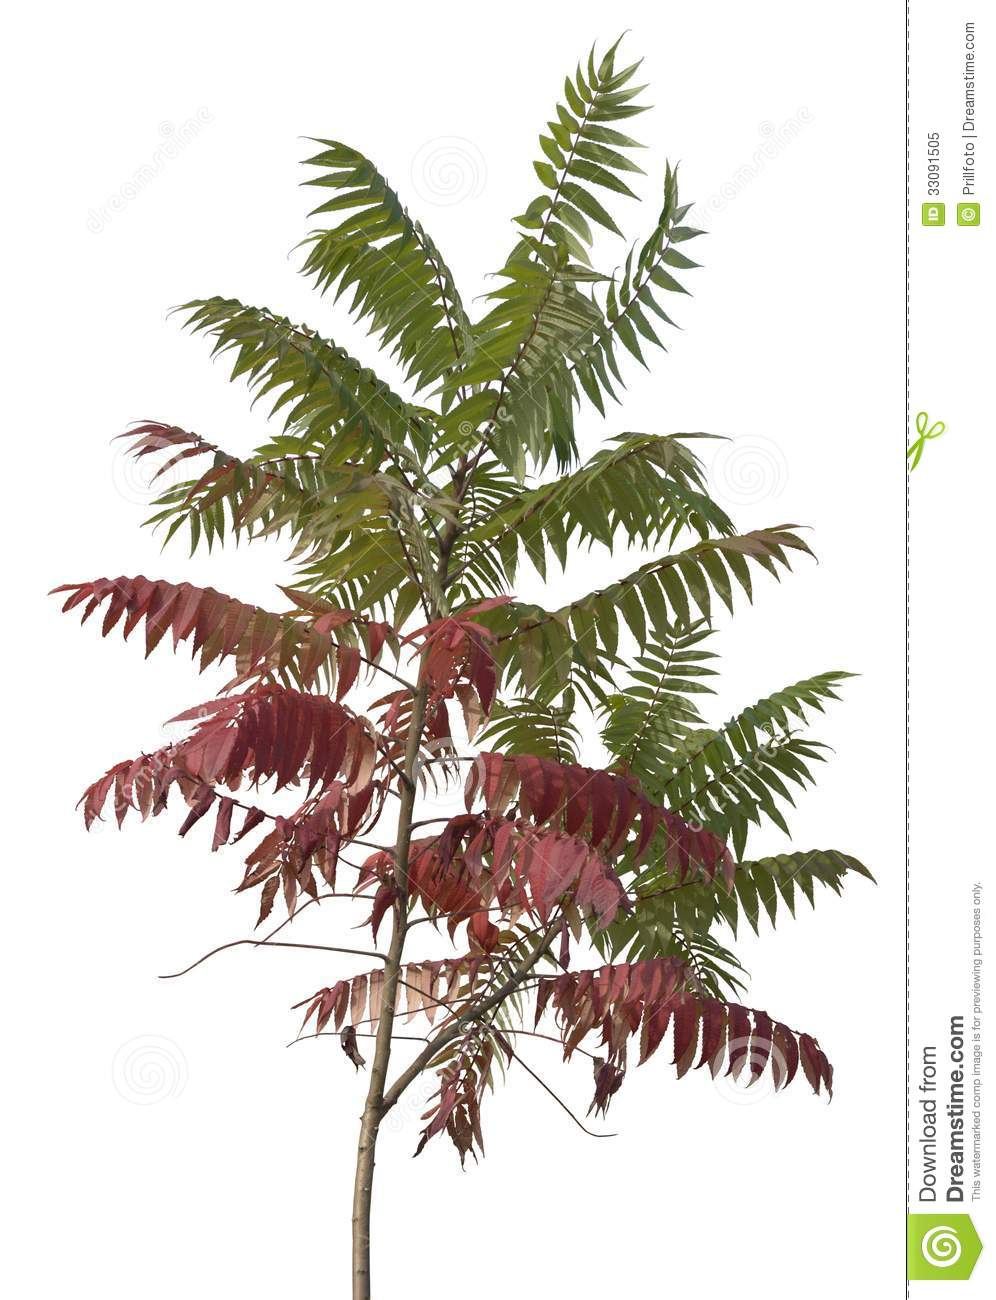 Temperate Climate Permaculture: Permaculture Plants: Sumac